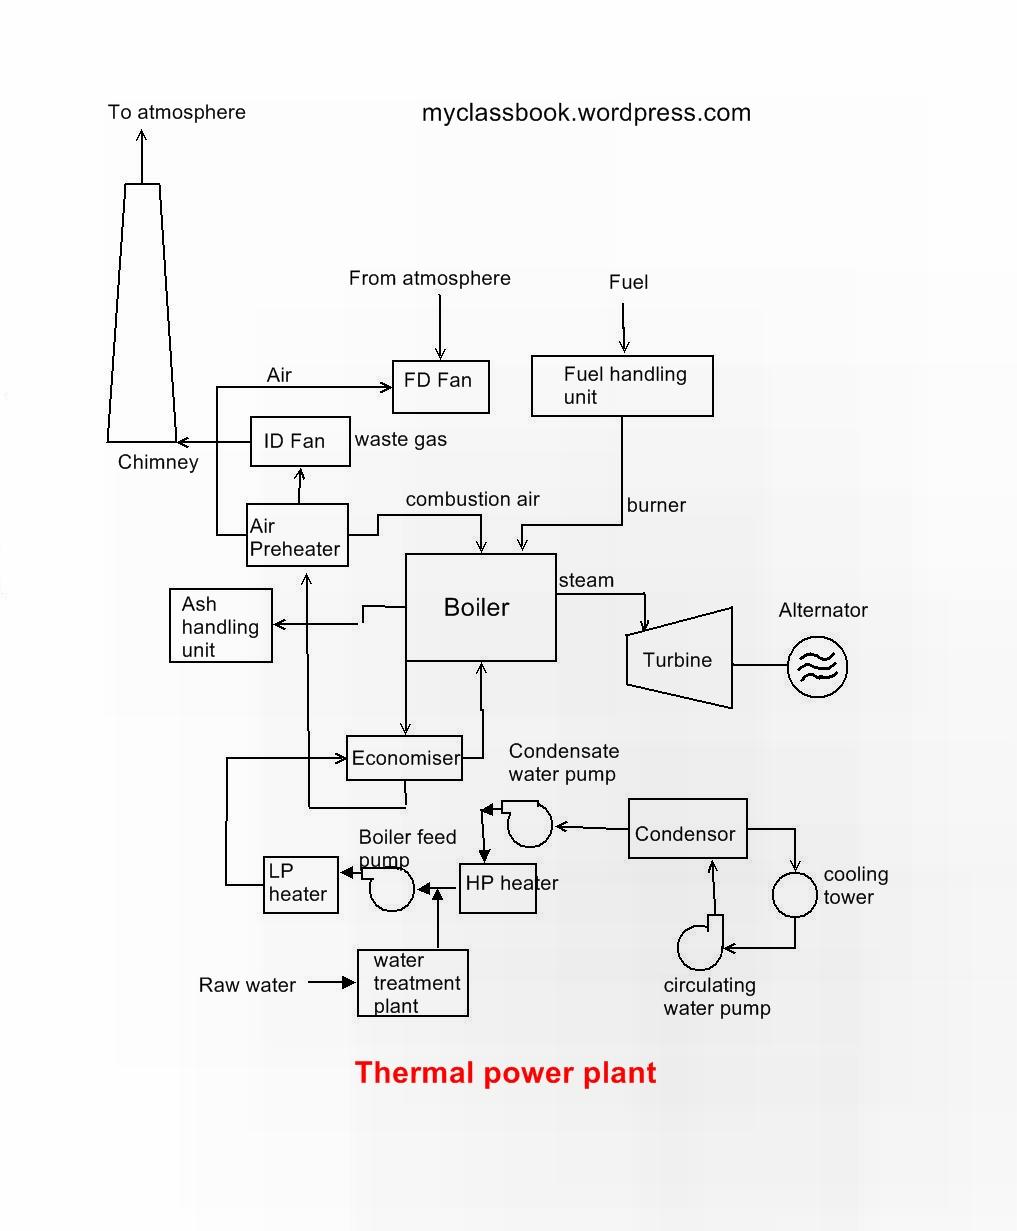 construction and working of thermal power plant - myclassbook, Wiring block